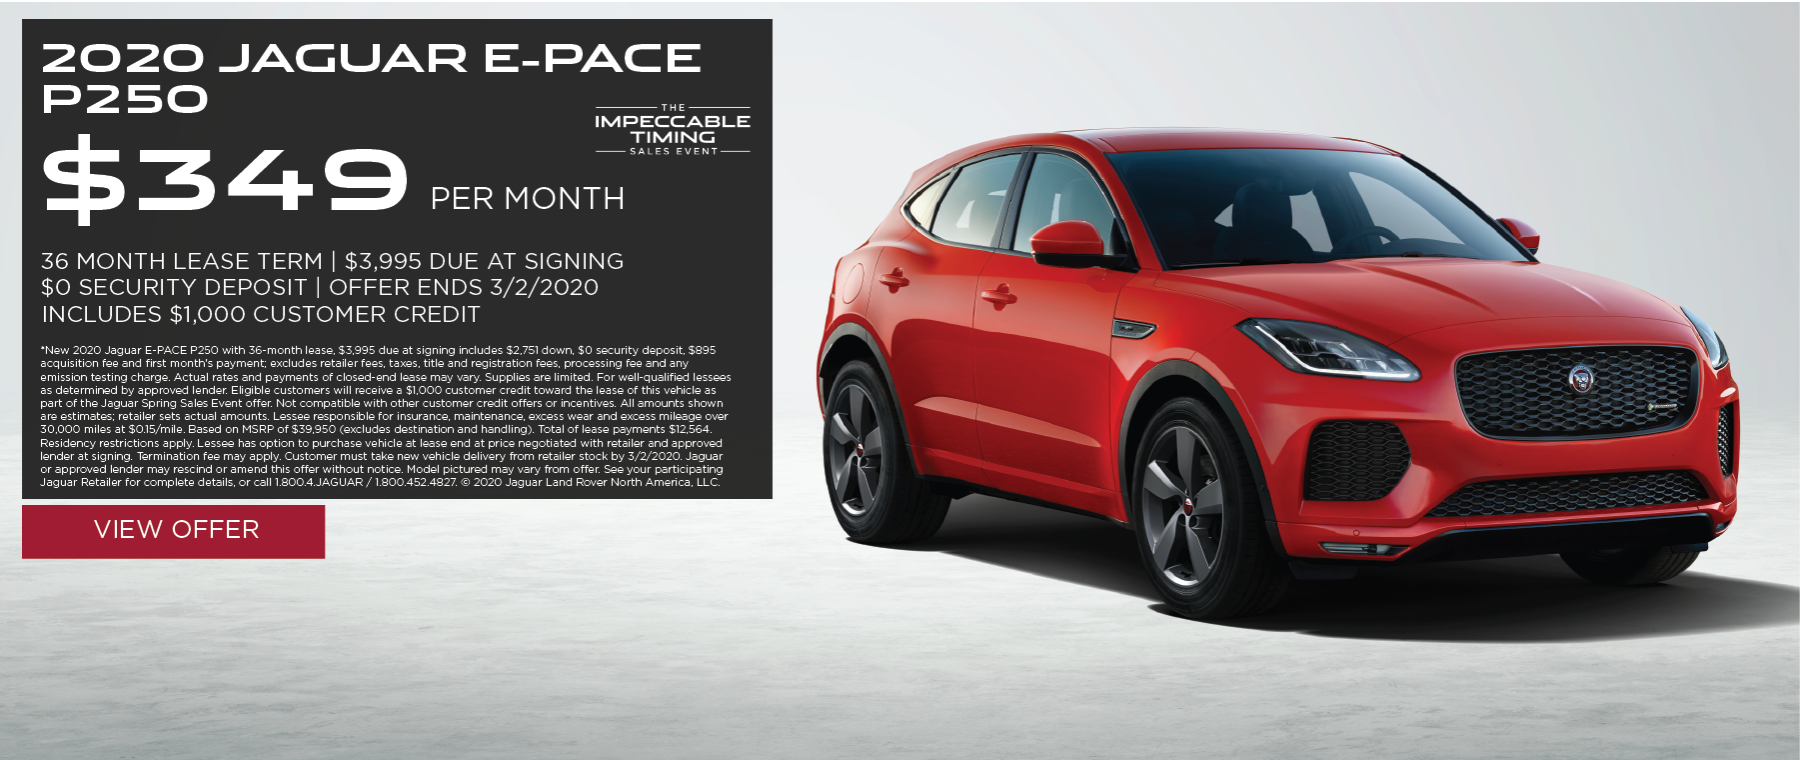 2020 JAGUAR E-PACE P250 PARKED WITH WHITE BACKGROUND. $349 PER MONTH. 36 MONTH LEASE TERM. $3,995 CASH DUE AT SIGNING. INCLUDES $1,000 CUSTOMER CREDIT.  $0 SECURITY DEPOSIT. 10,000 MILES PER YEAR. OFFER ENDS 3/2/2020. THE IMPECCABLE TIMING SALES EVENT.